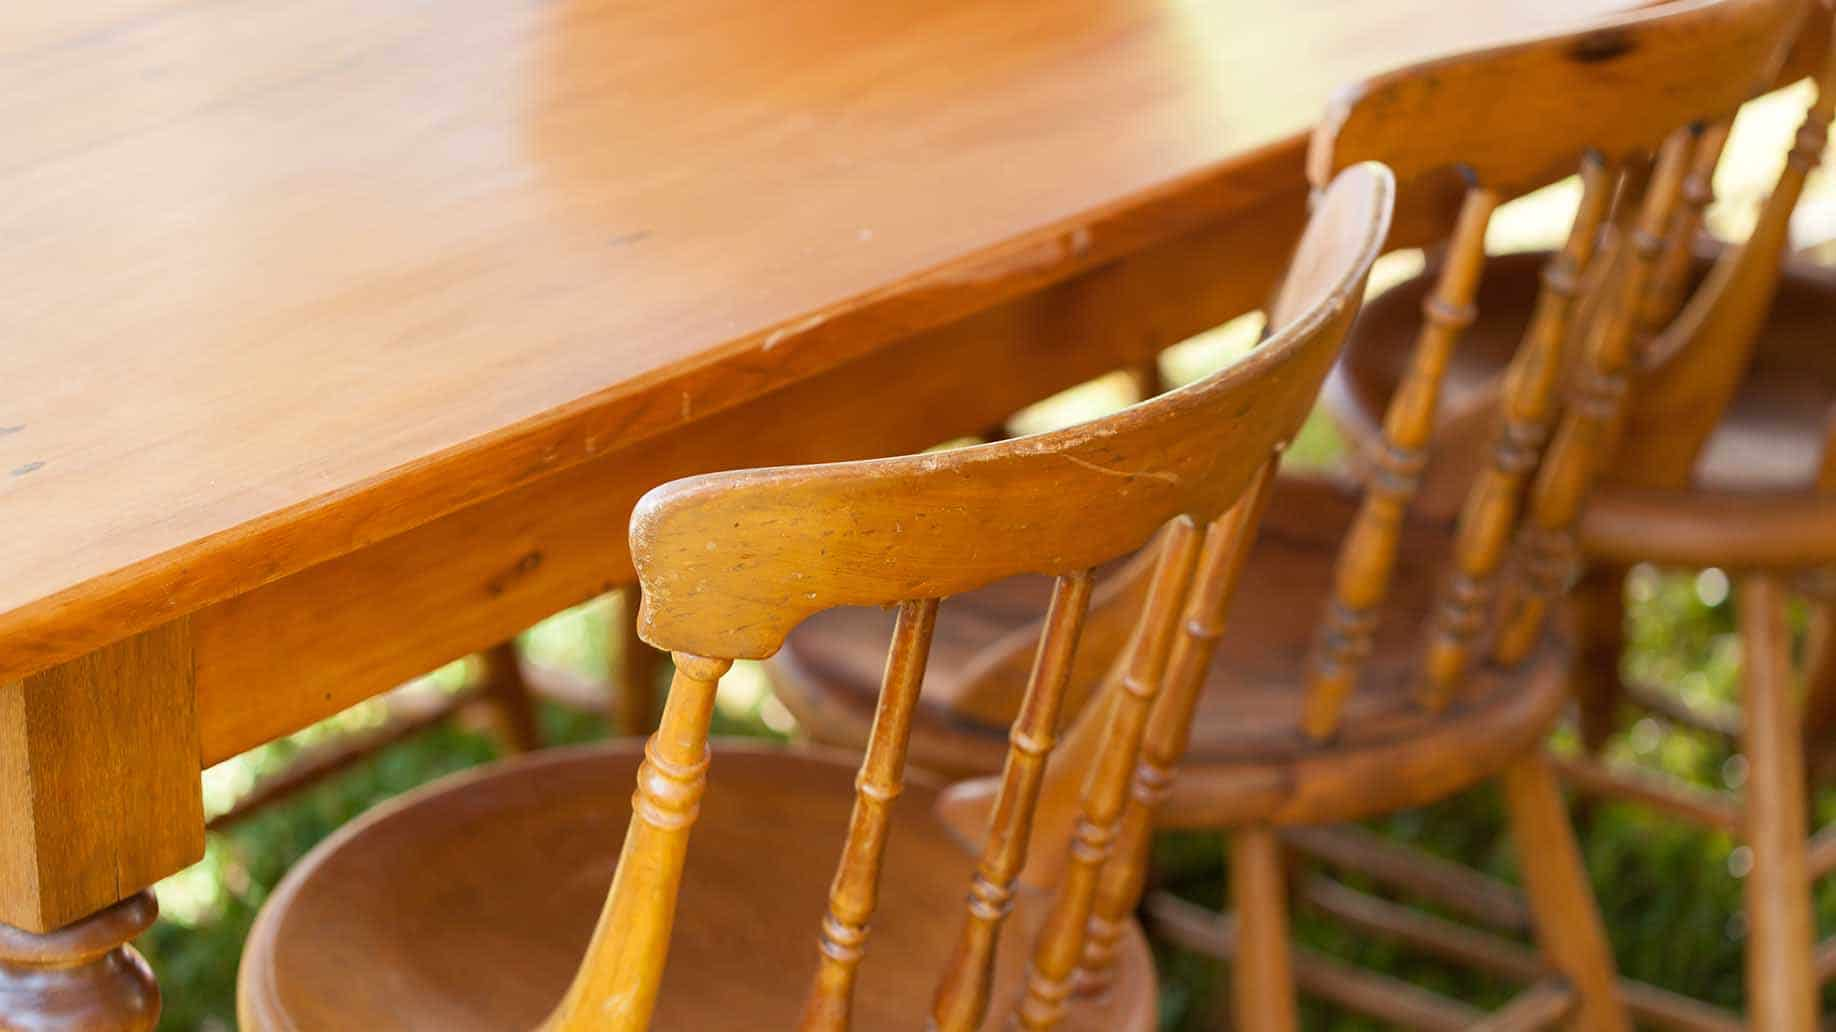 places to borrow tables and chairs lazy boy office leather where donate used furniture charity locally